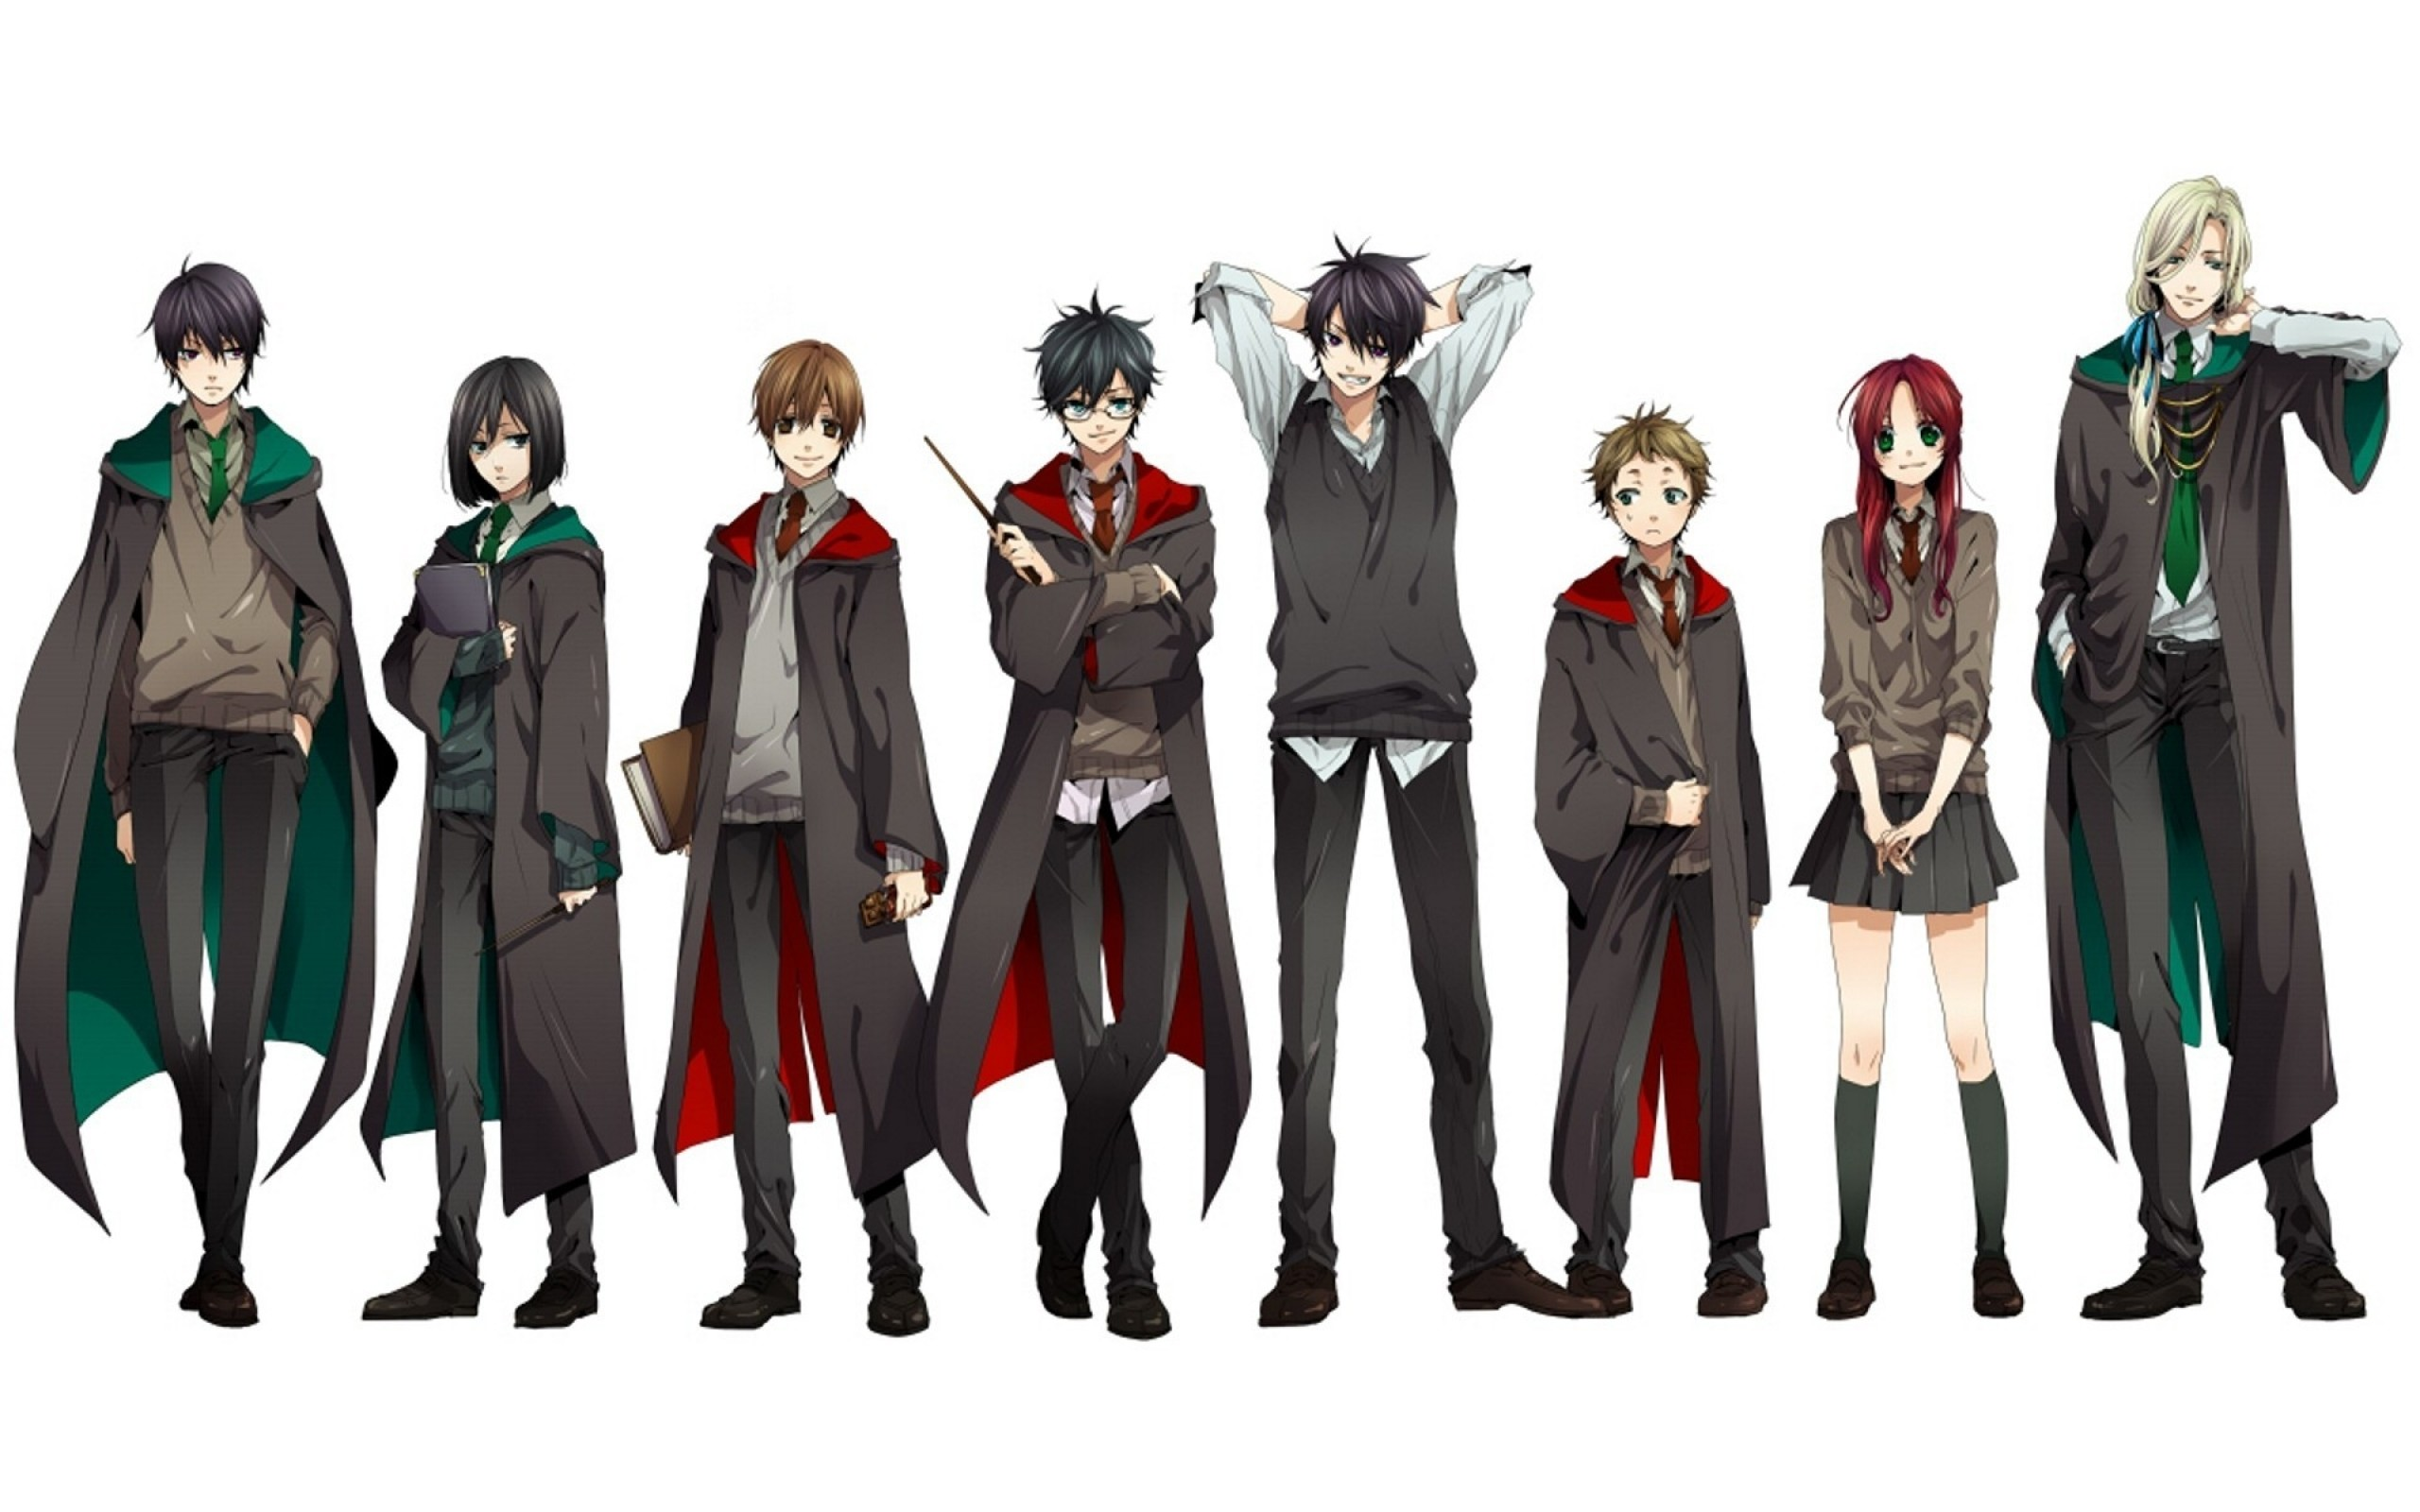 2560x1600 harry potter sirius black anime students gryffindor severus snape lucius  malfoy white background sly Art HD